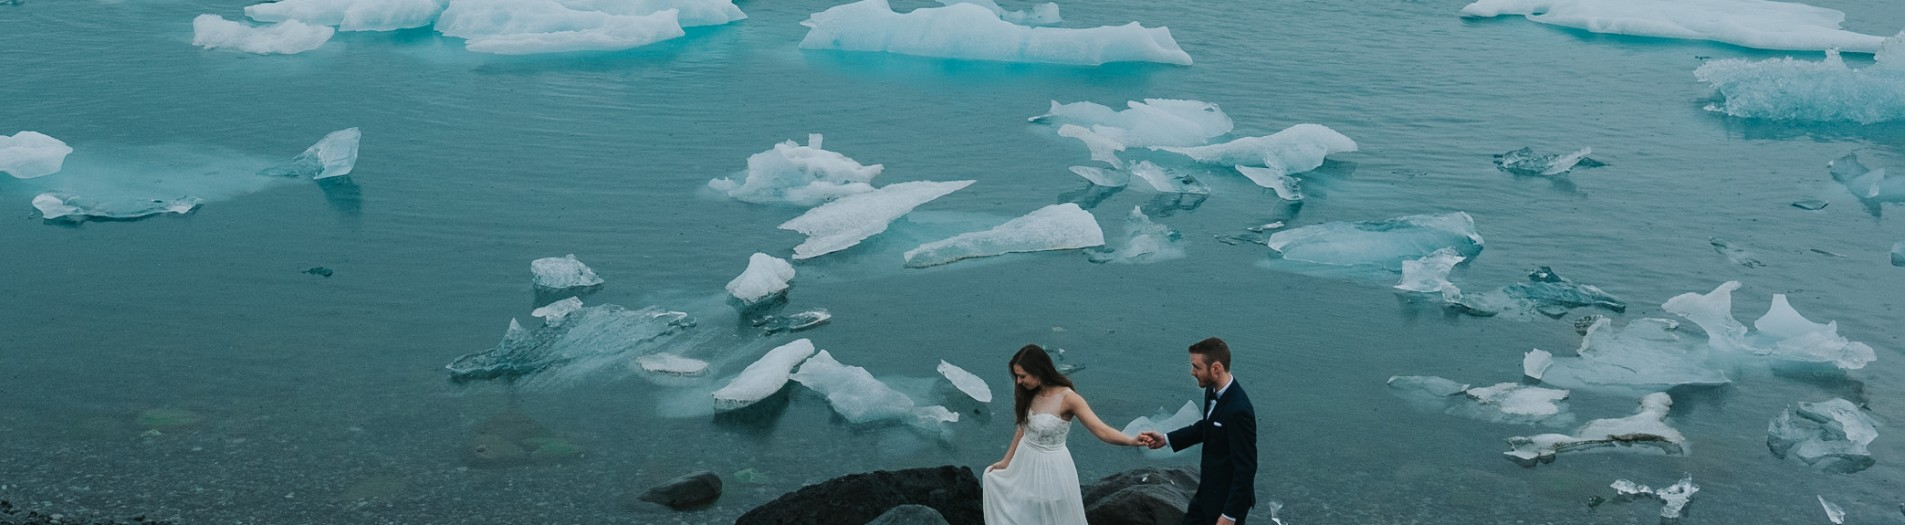 Diana + Michael | Day After Session in Jökulsárlón and Svartifoss